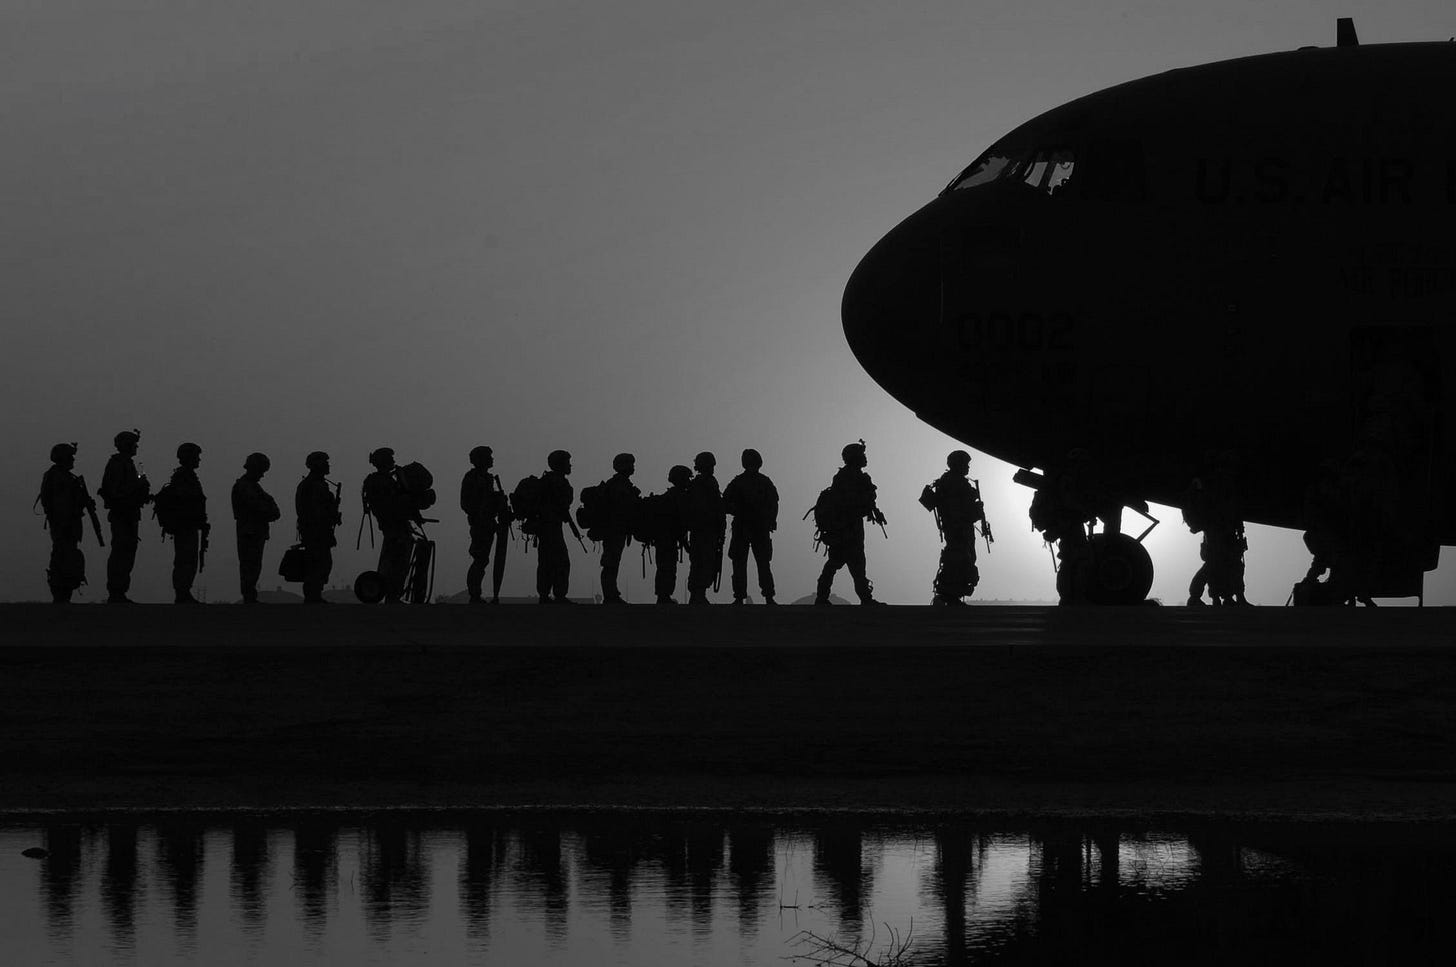 At dusk or dawn, the silhouettes of soldiers lined up to board a jet